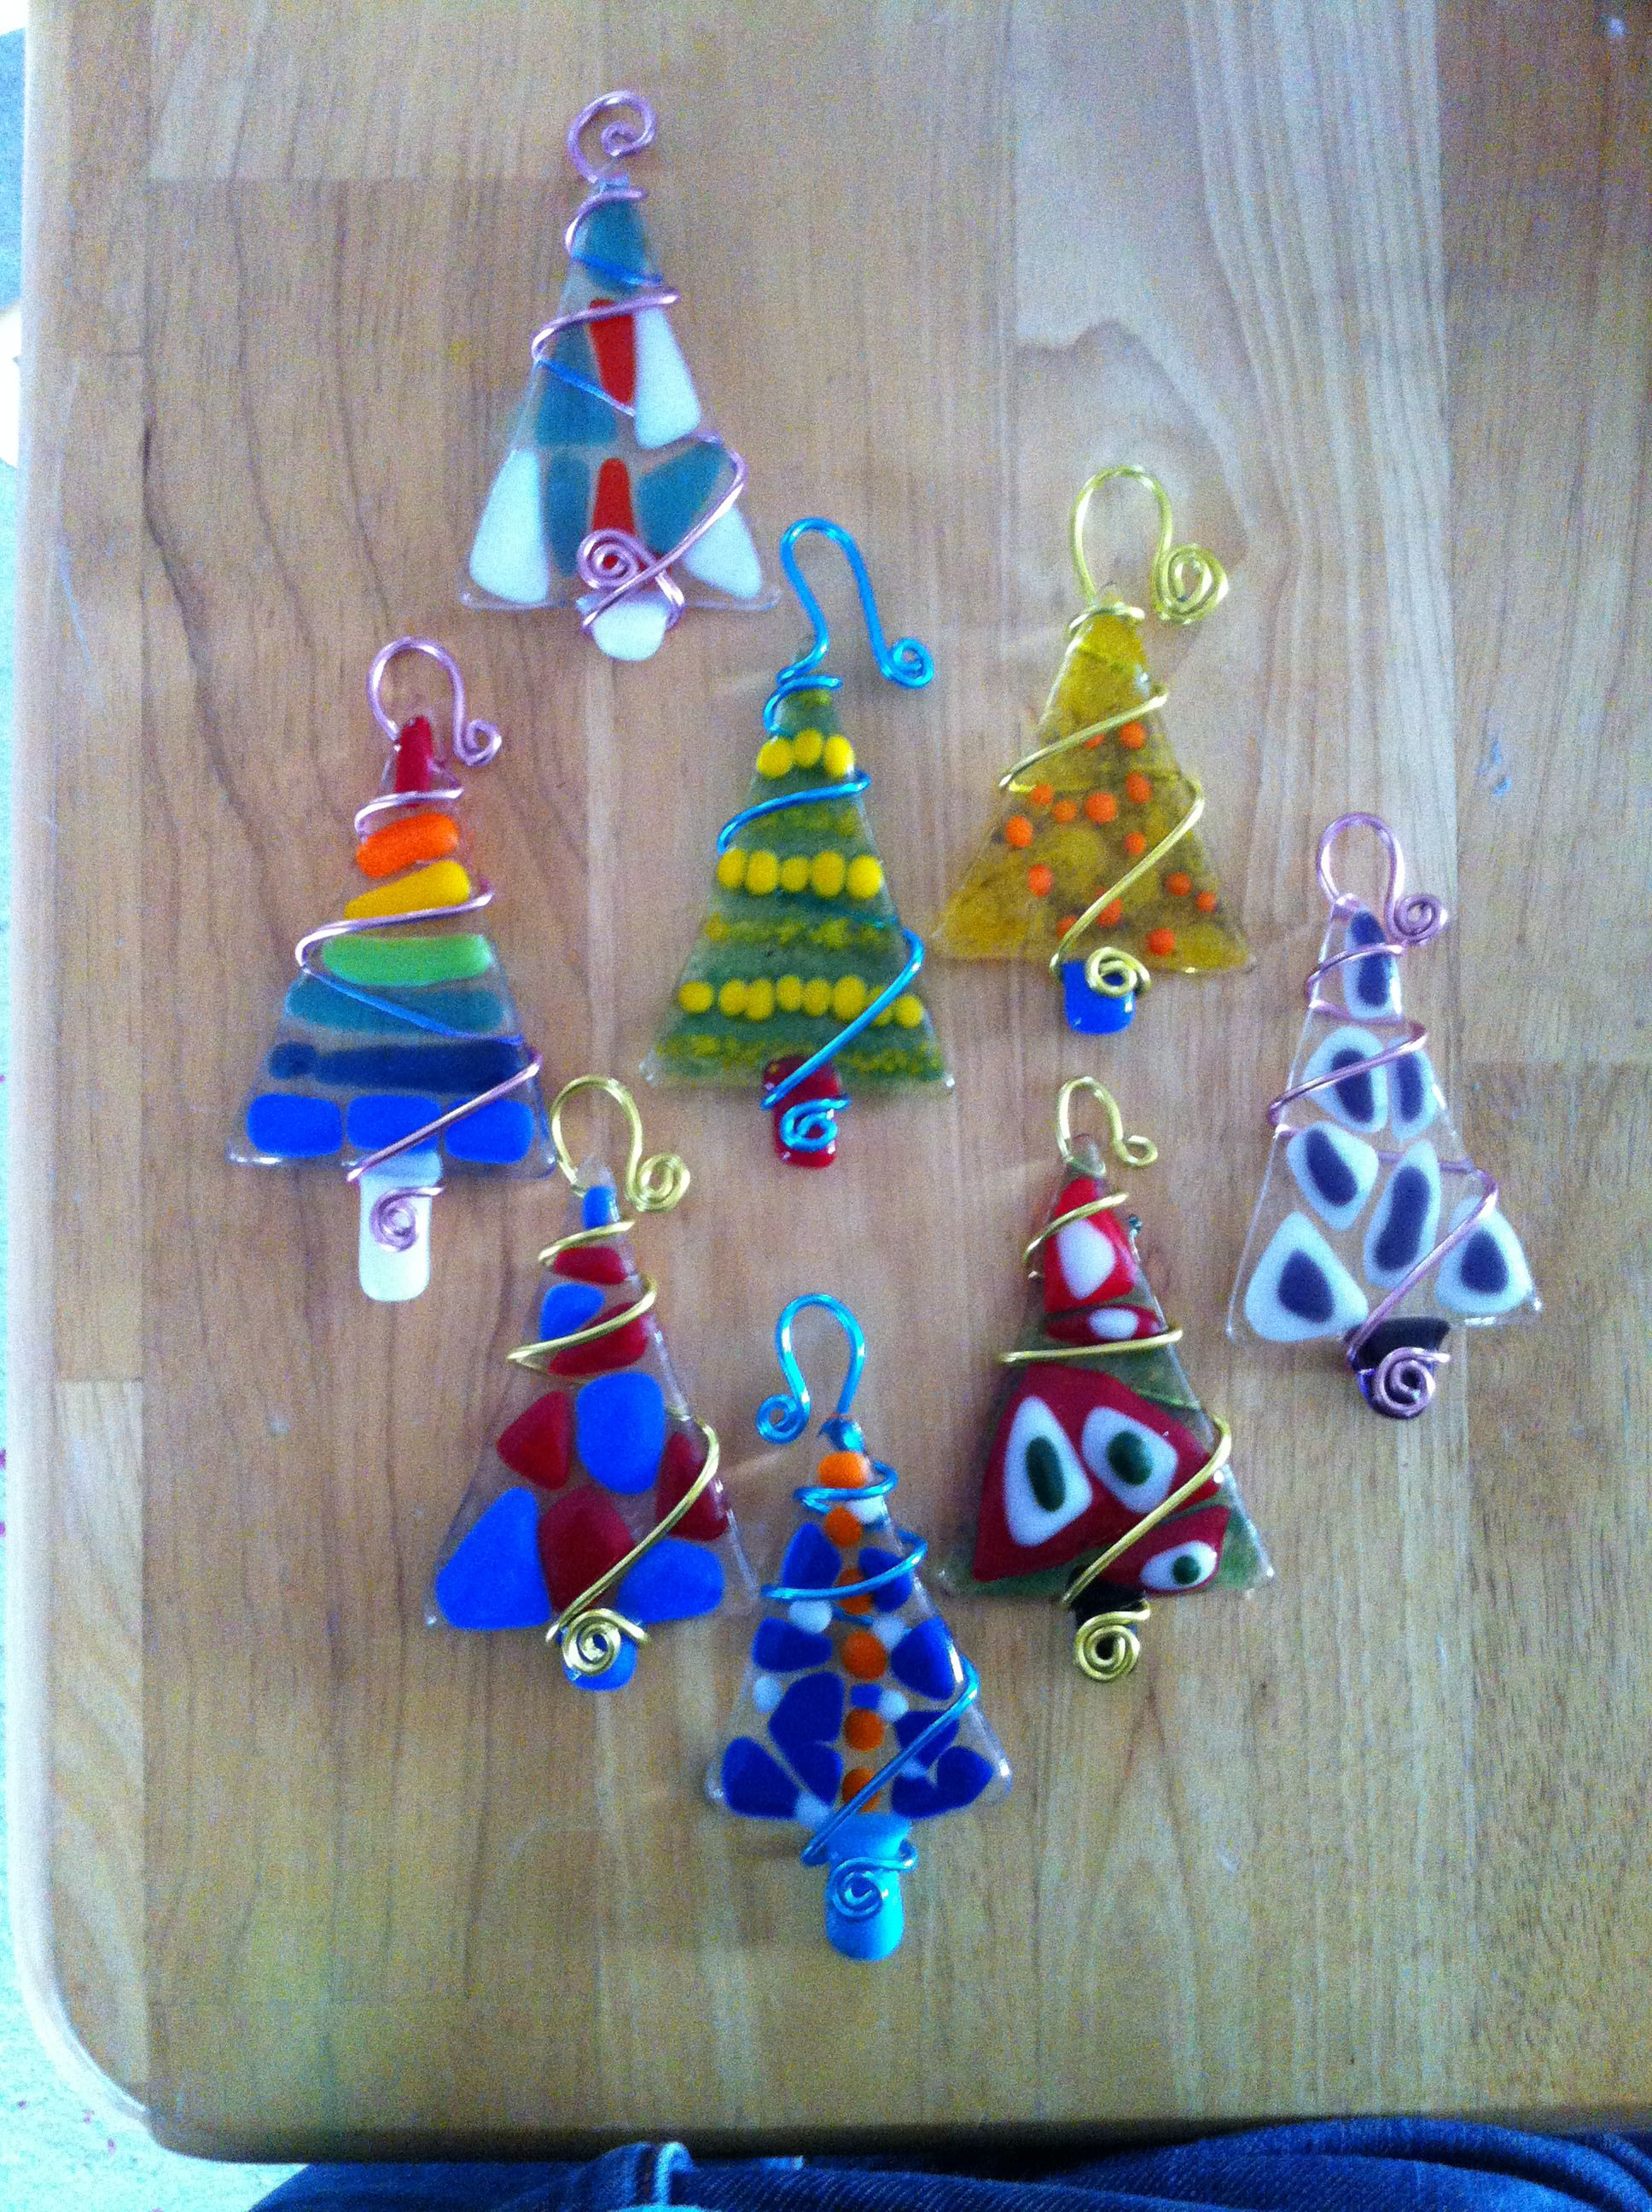 Glass Fused Christmas Ornaments Hand Made At The Art Farm